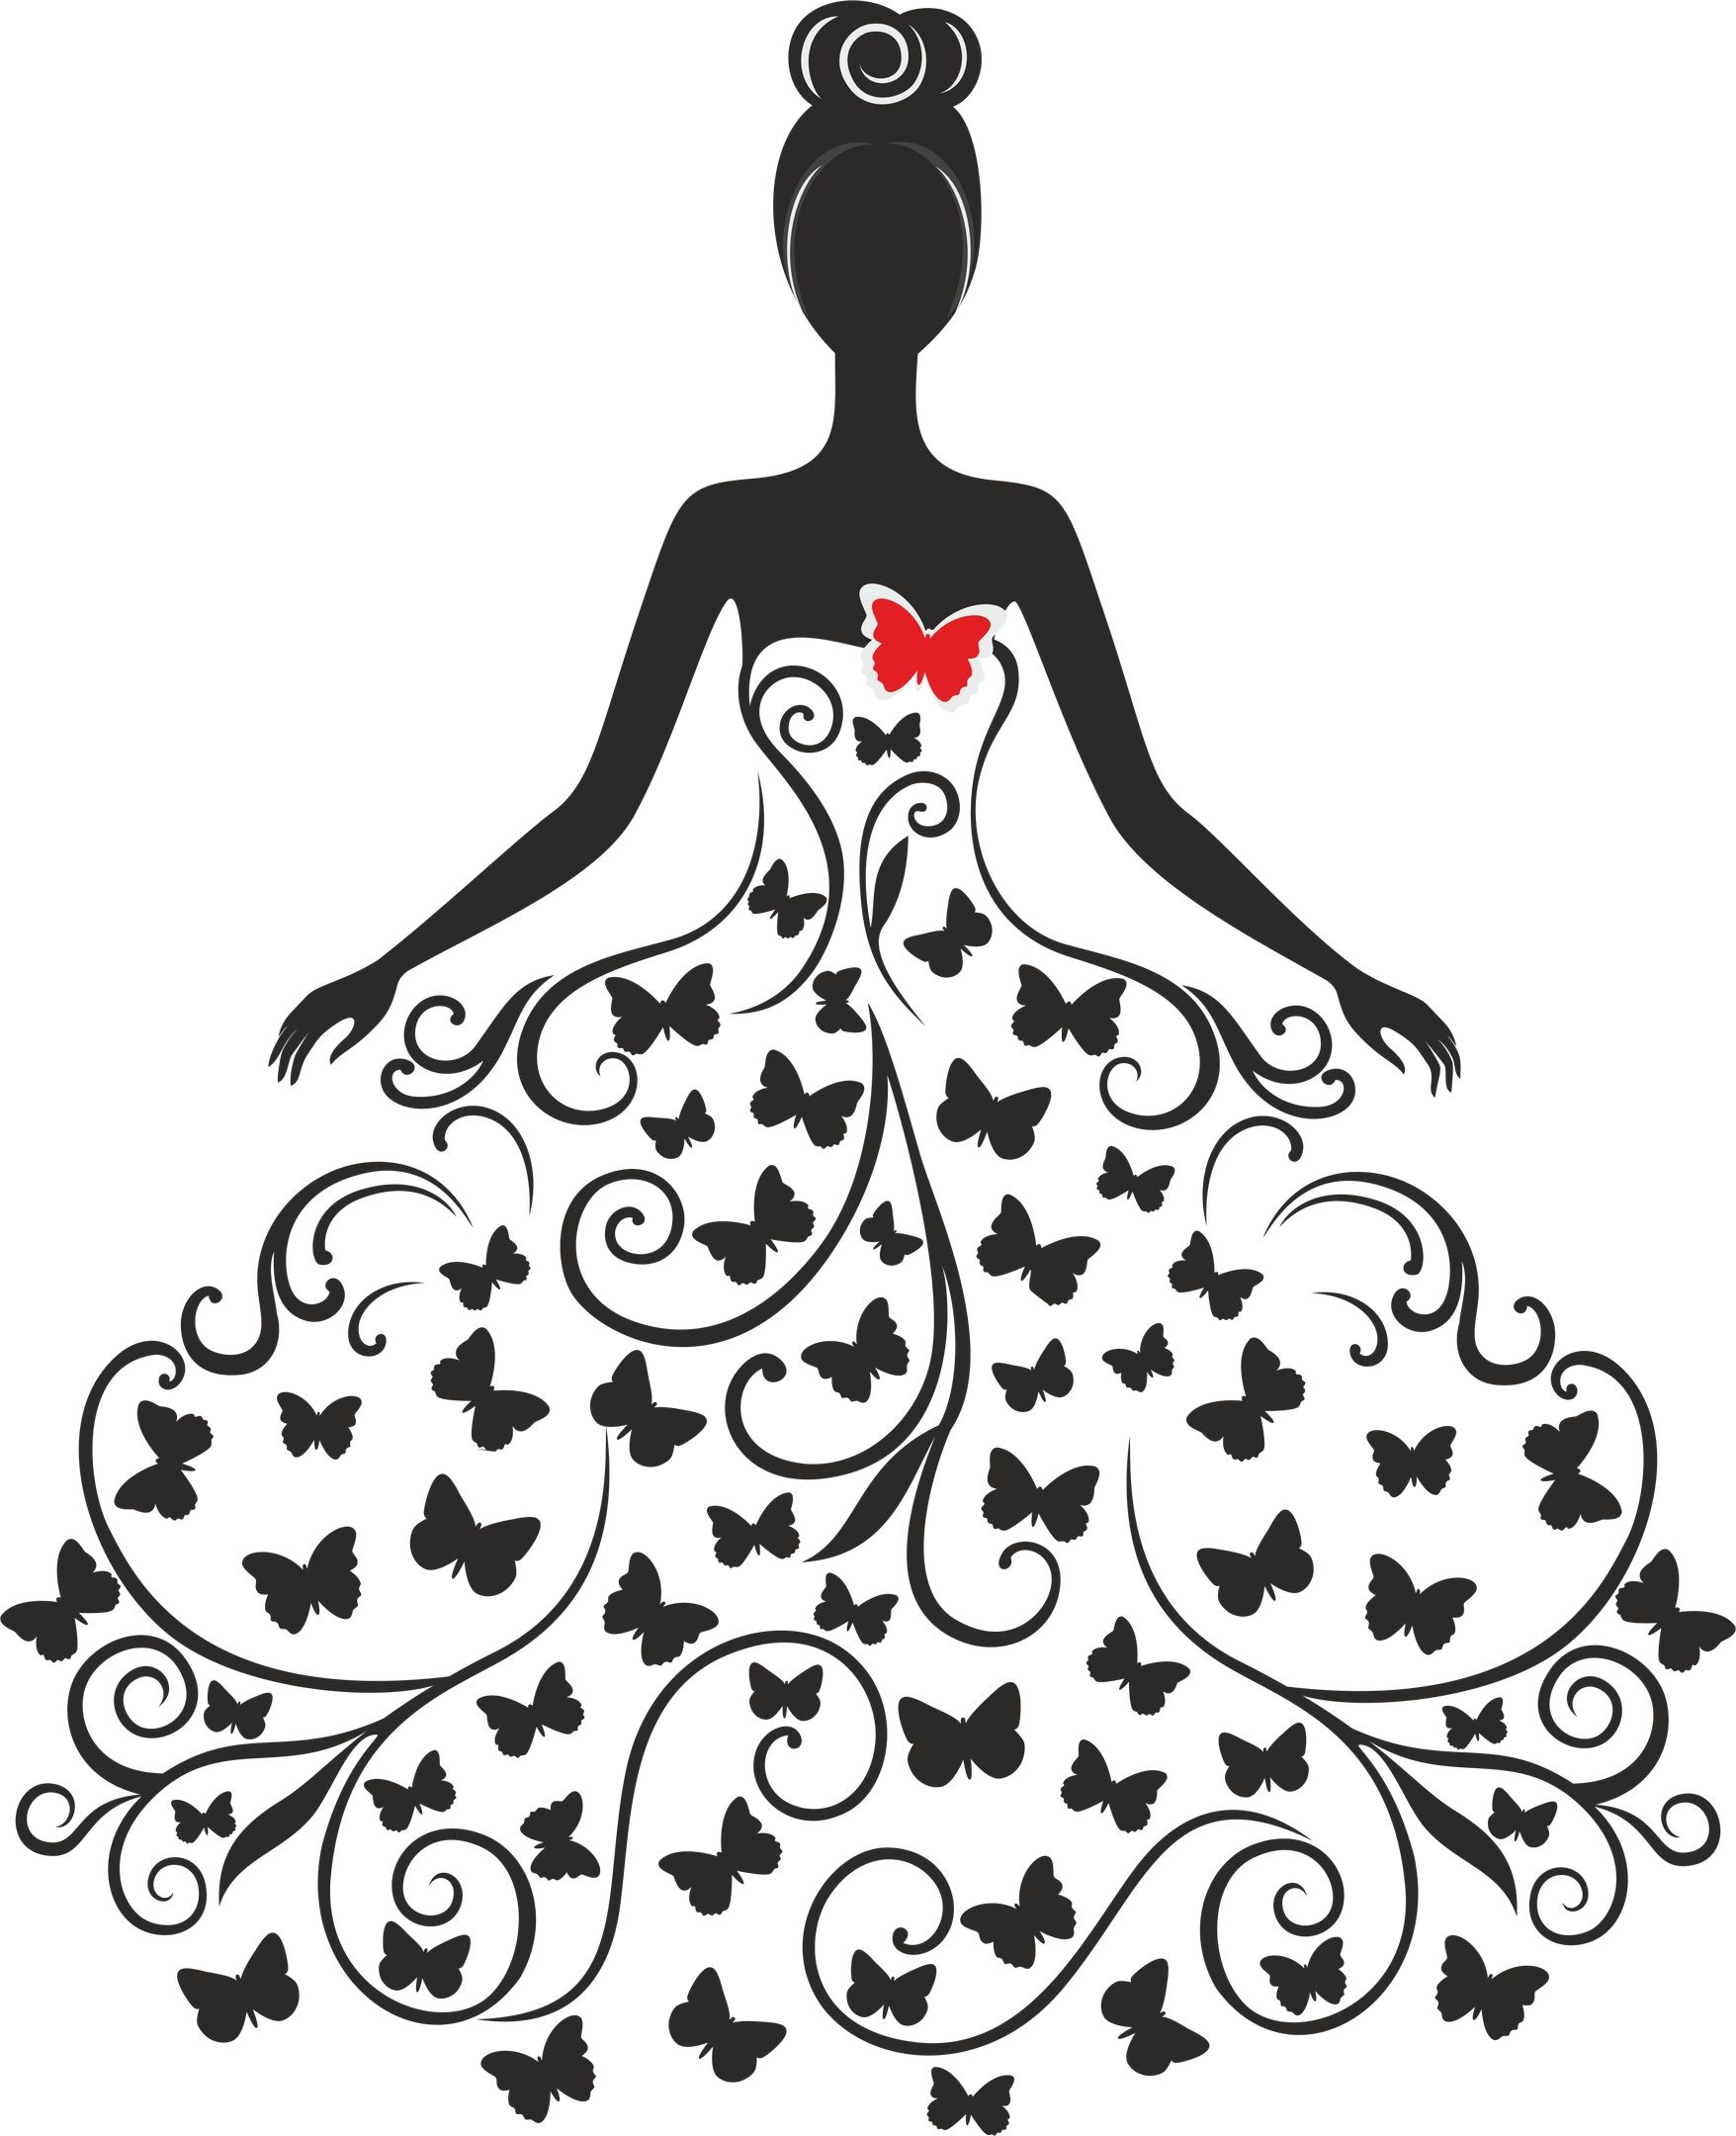 Wedding Silhouette Free Vector cdr Download.